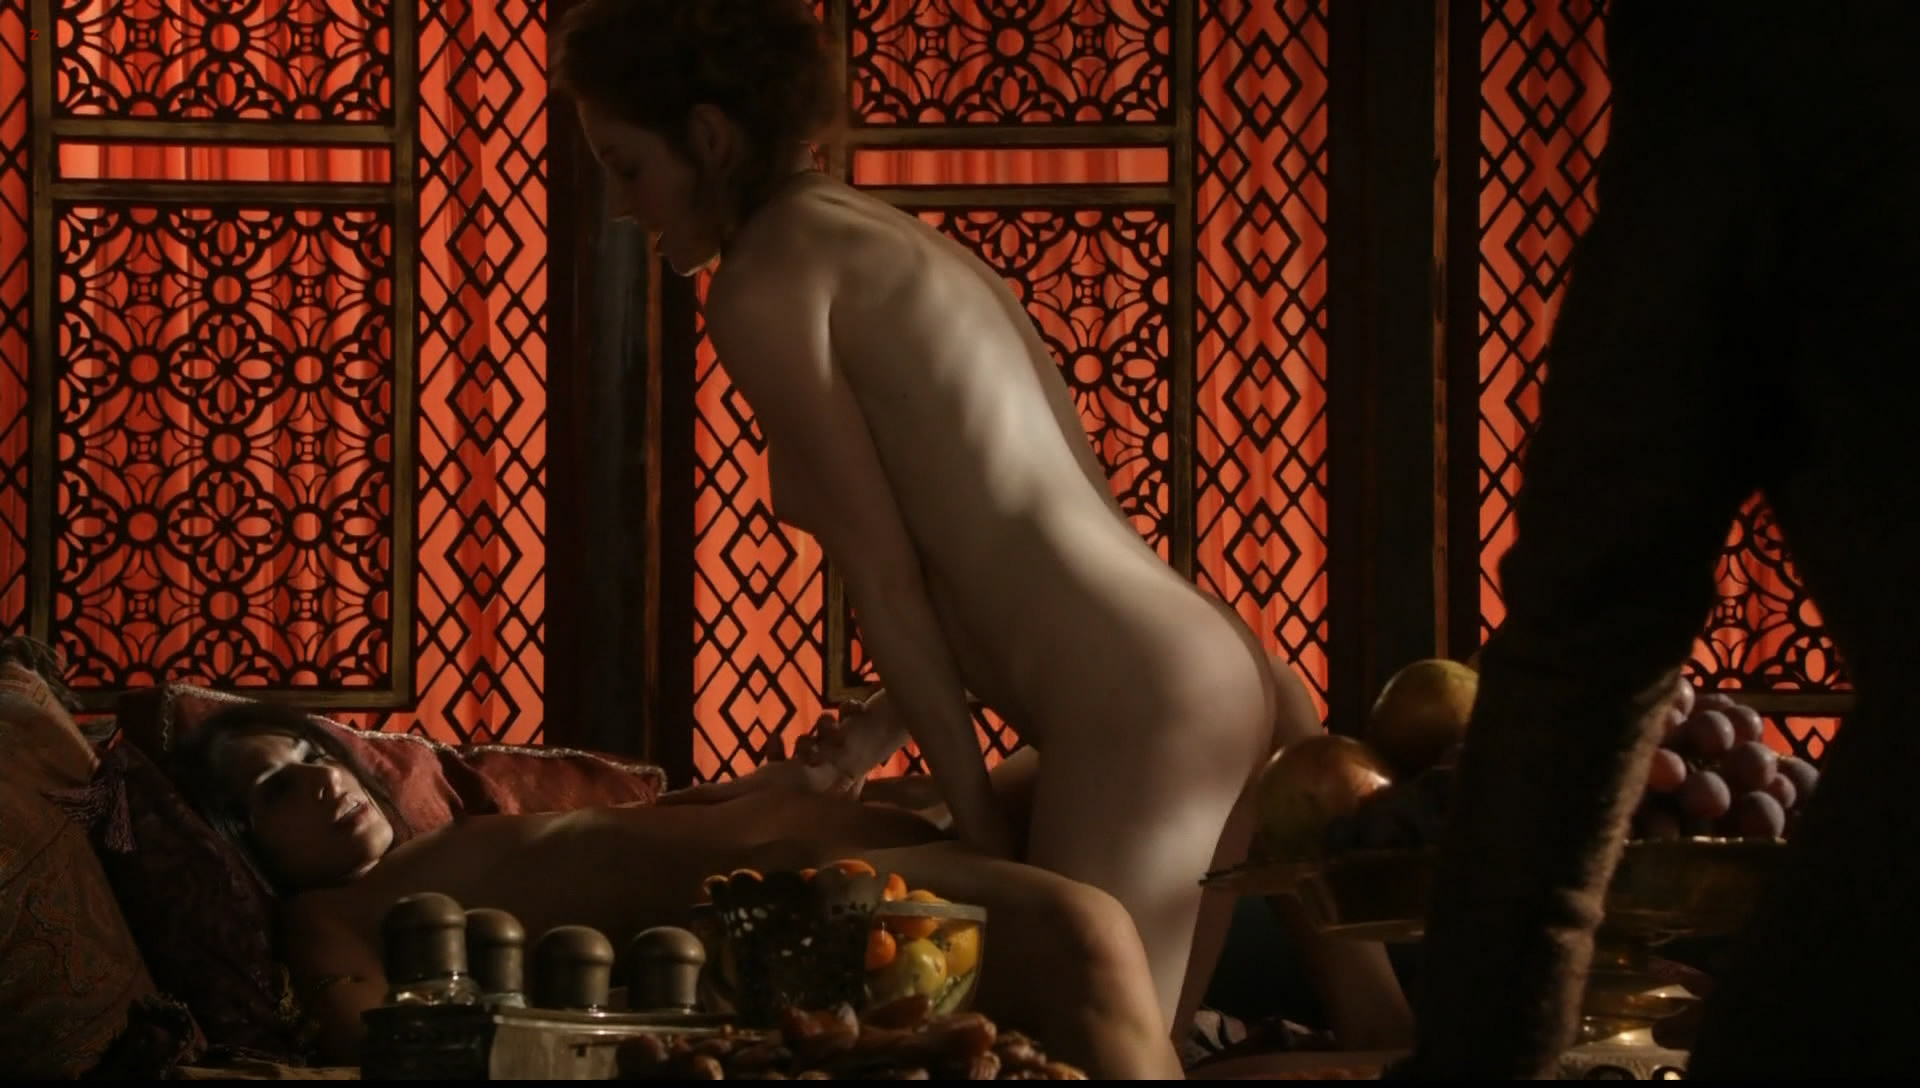 Esme Bianco Hot for esme bianco and sahara knite nude in - game of thrones s01e07